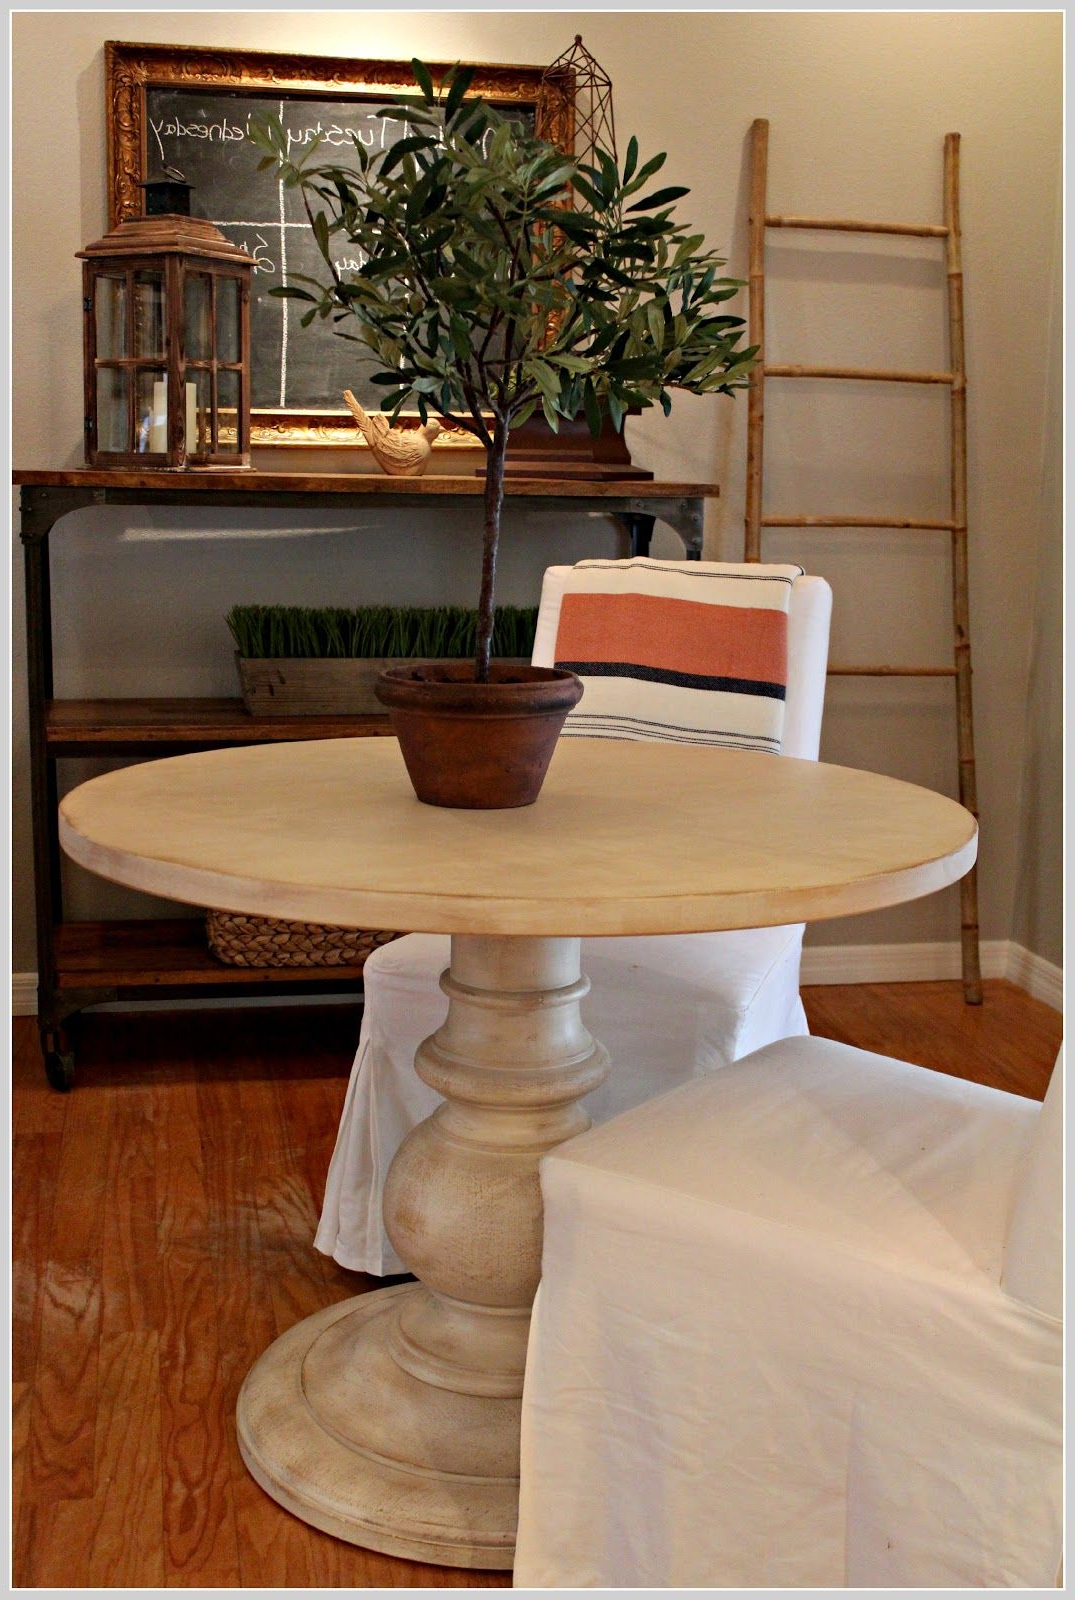 Recent Dawson Pedestal Dining Tables pertaining to Pottery Barn Dawson Pedestal Table White - Google Search